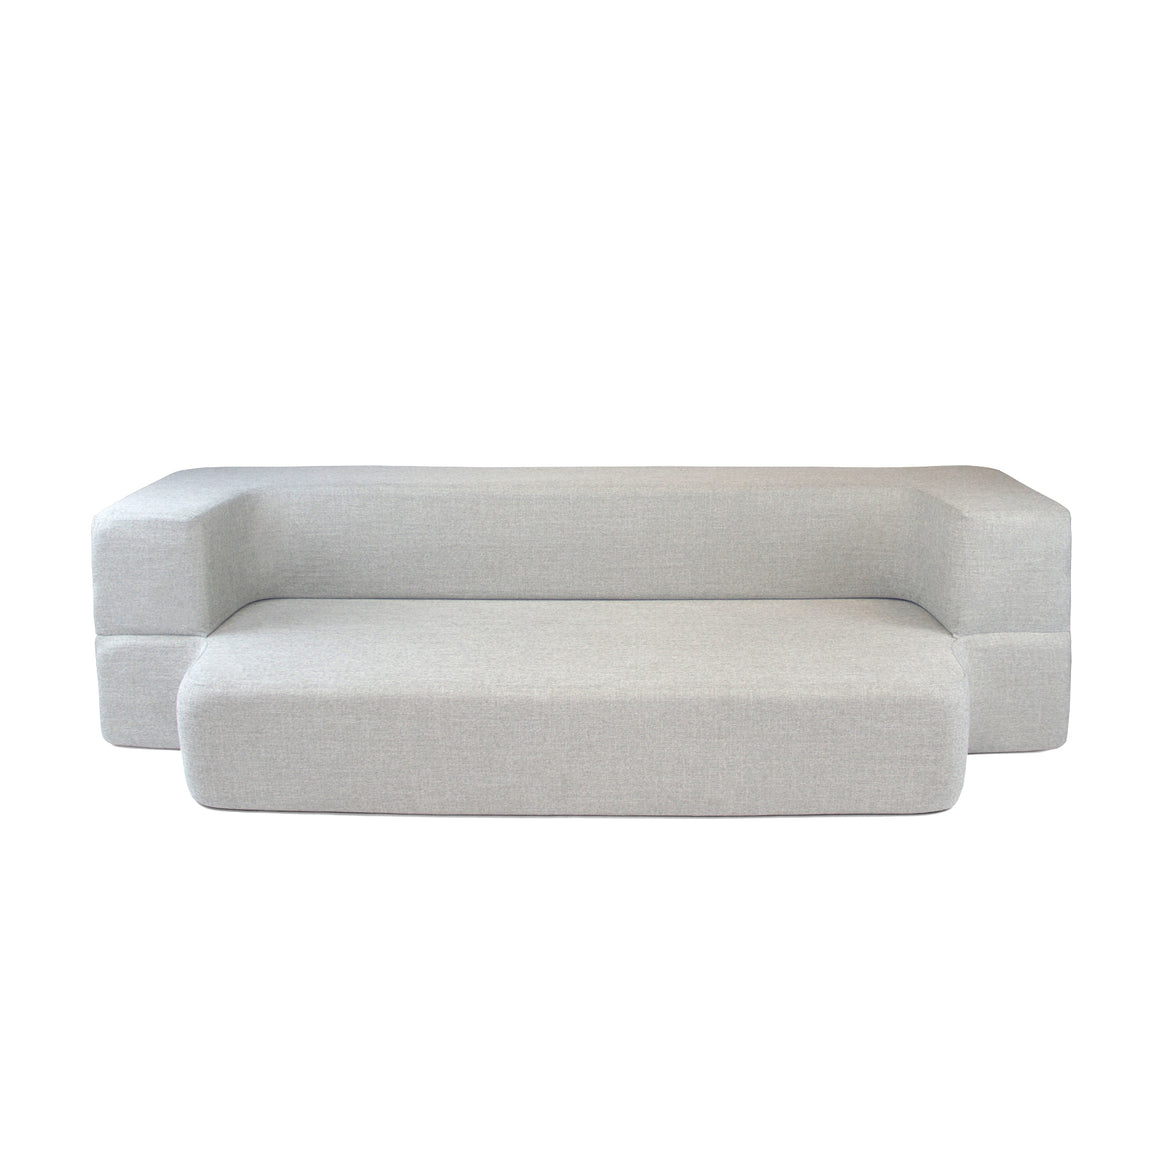 Limestone CouchBed